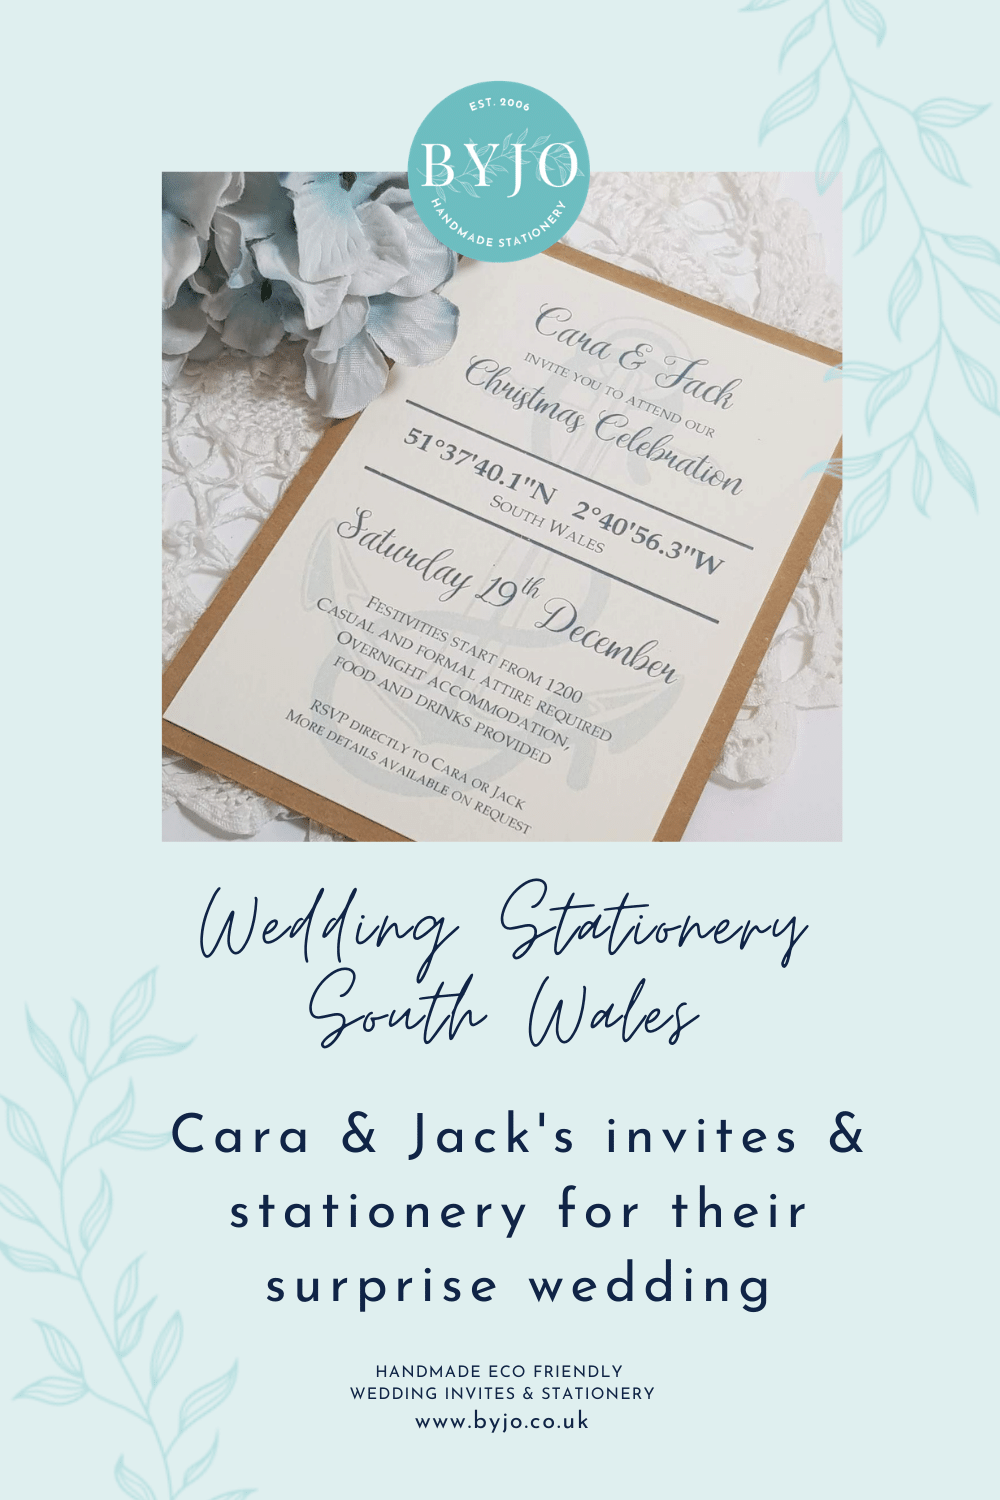 invitations and stationery for a South Wales surprise wedding